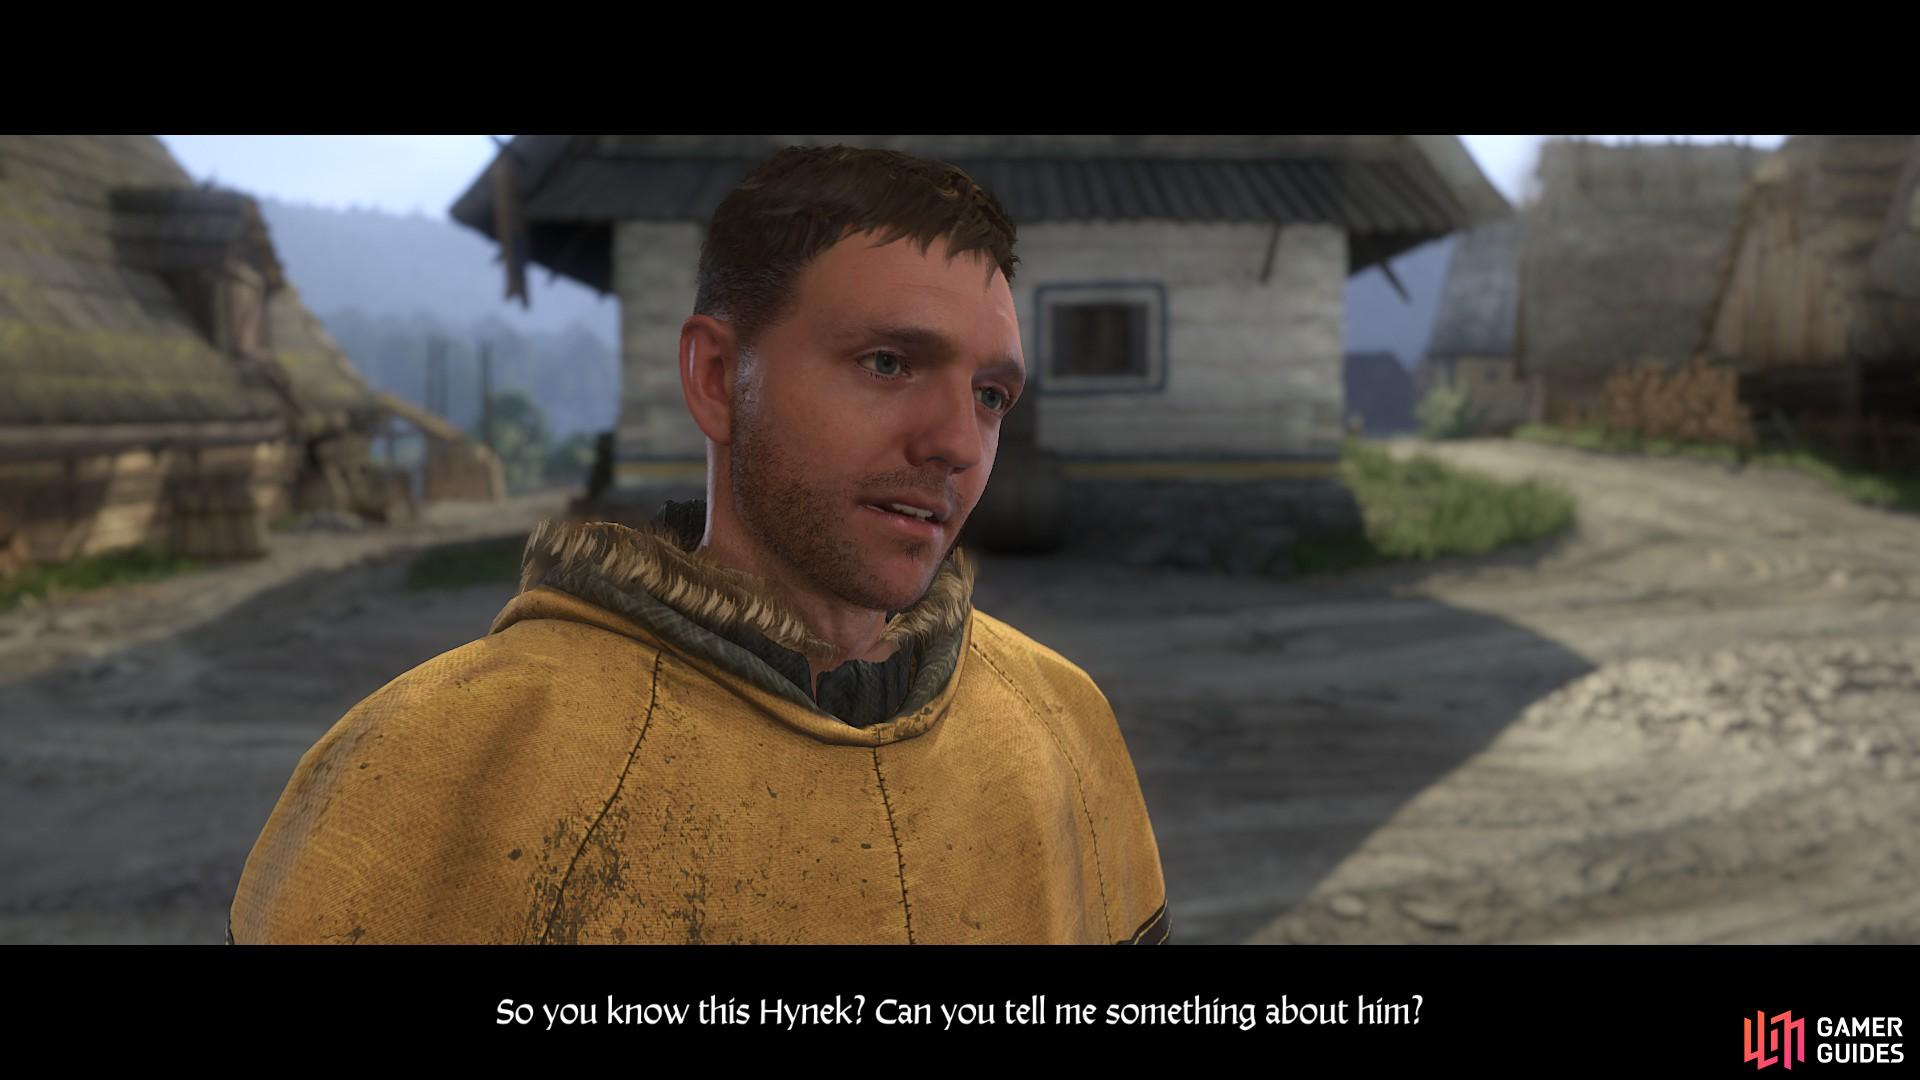 When you arrive in Ledetchko, ask anyone in the settlement if they know of Reeky.